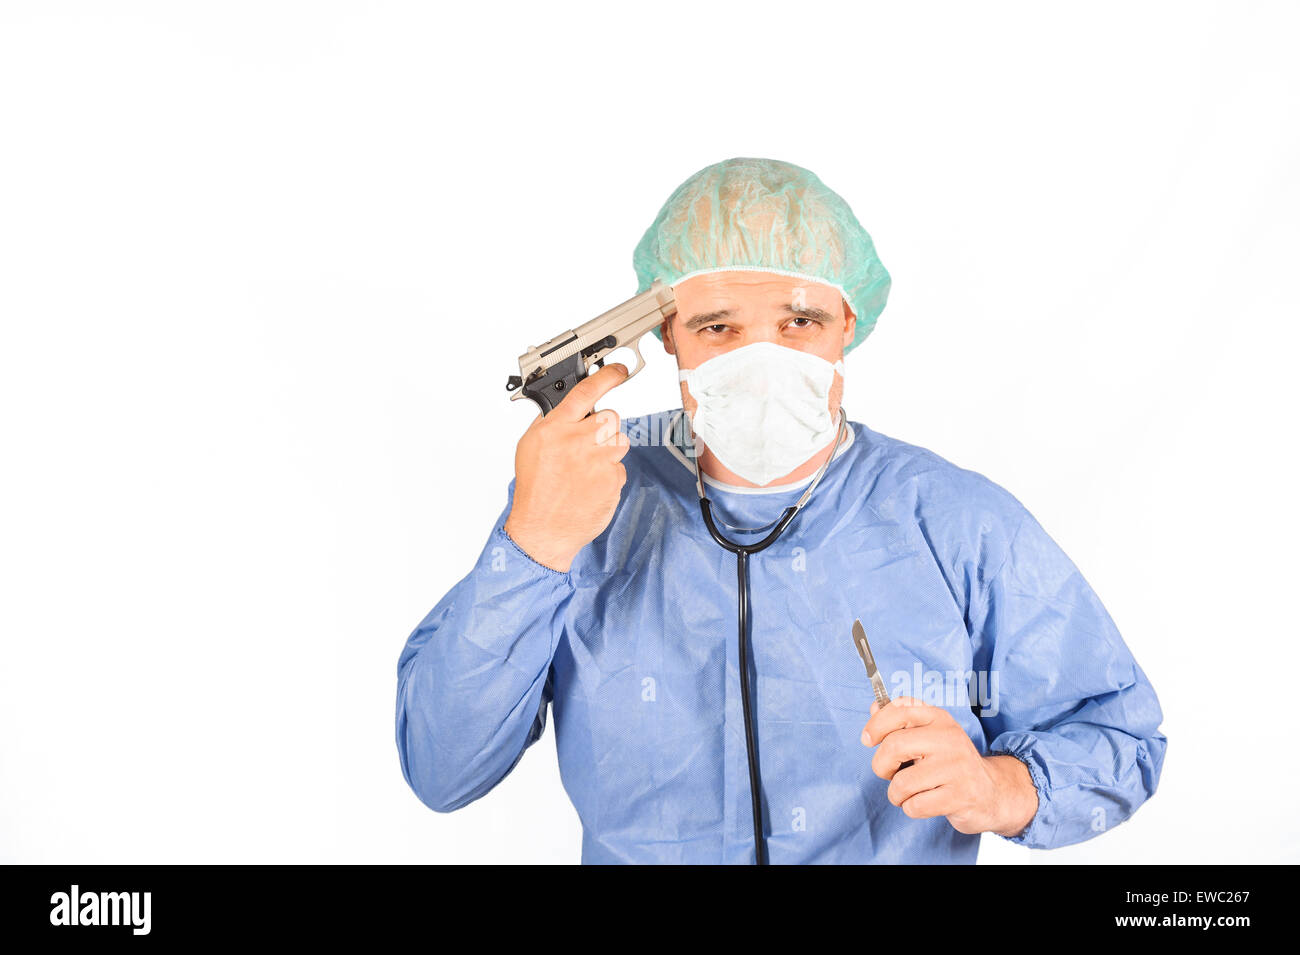 Surgeon planning to suicide, gun on his head isolated on white background - Stock Image